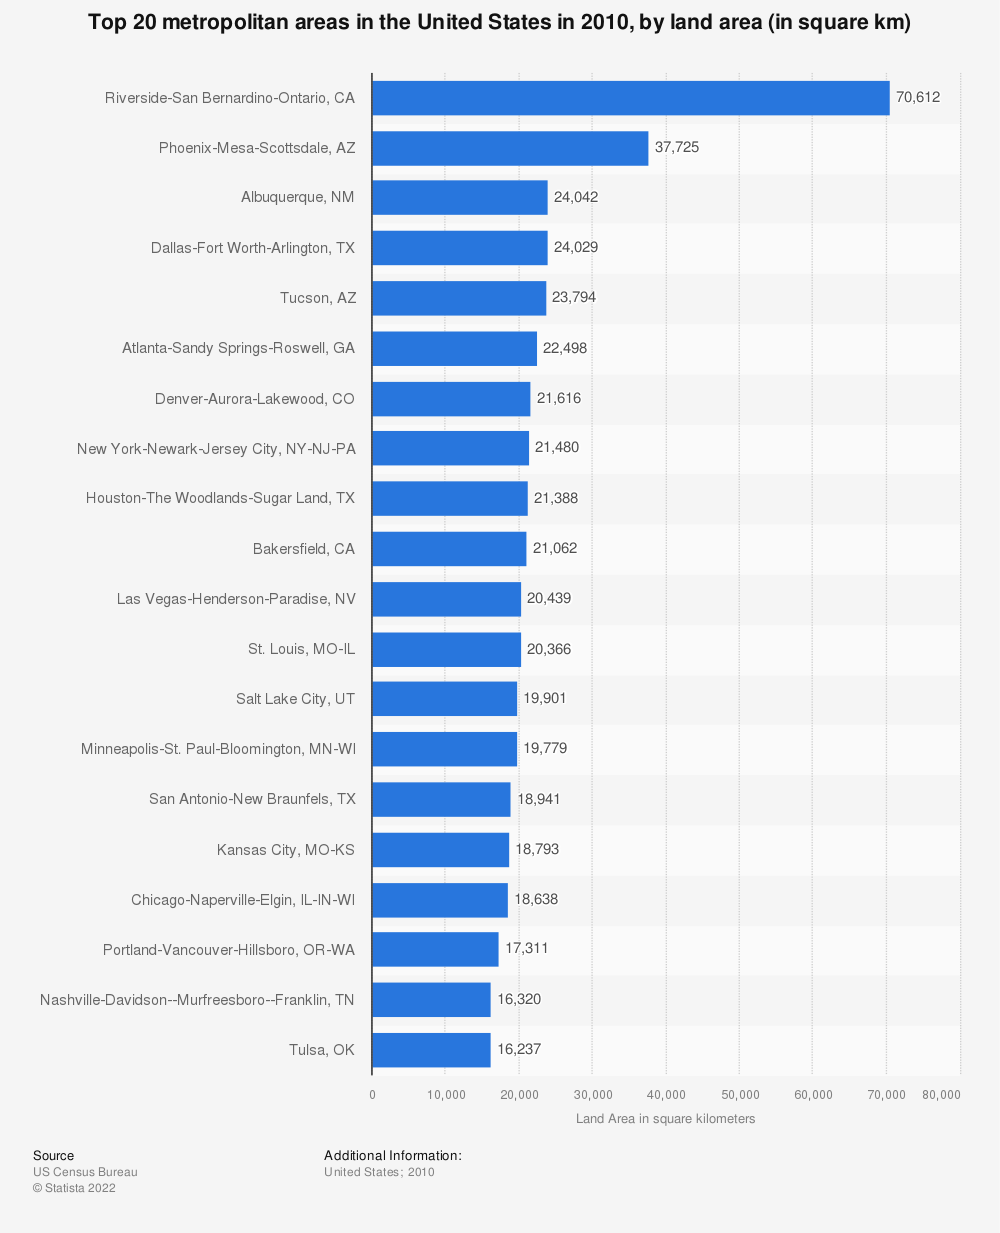 Statistic: Top 20 metropolitan areas in the United States in 2010, by land area (in square km) | Statista